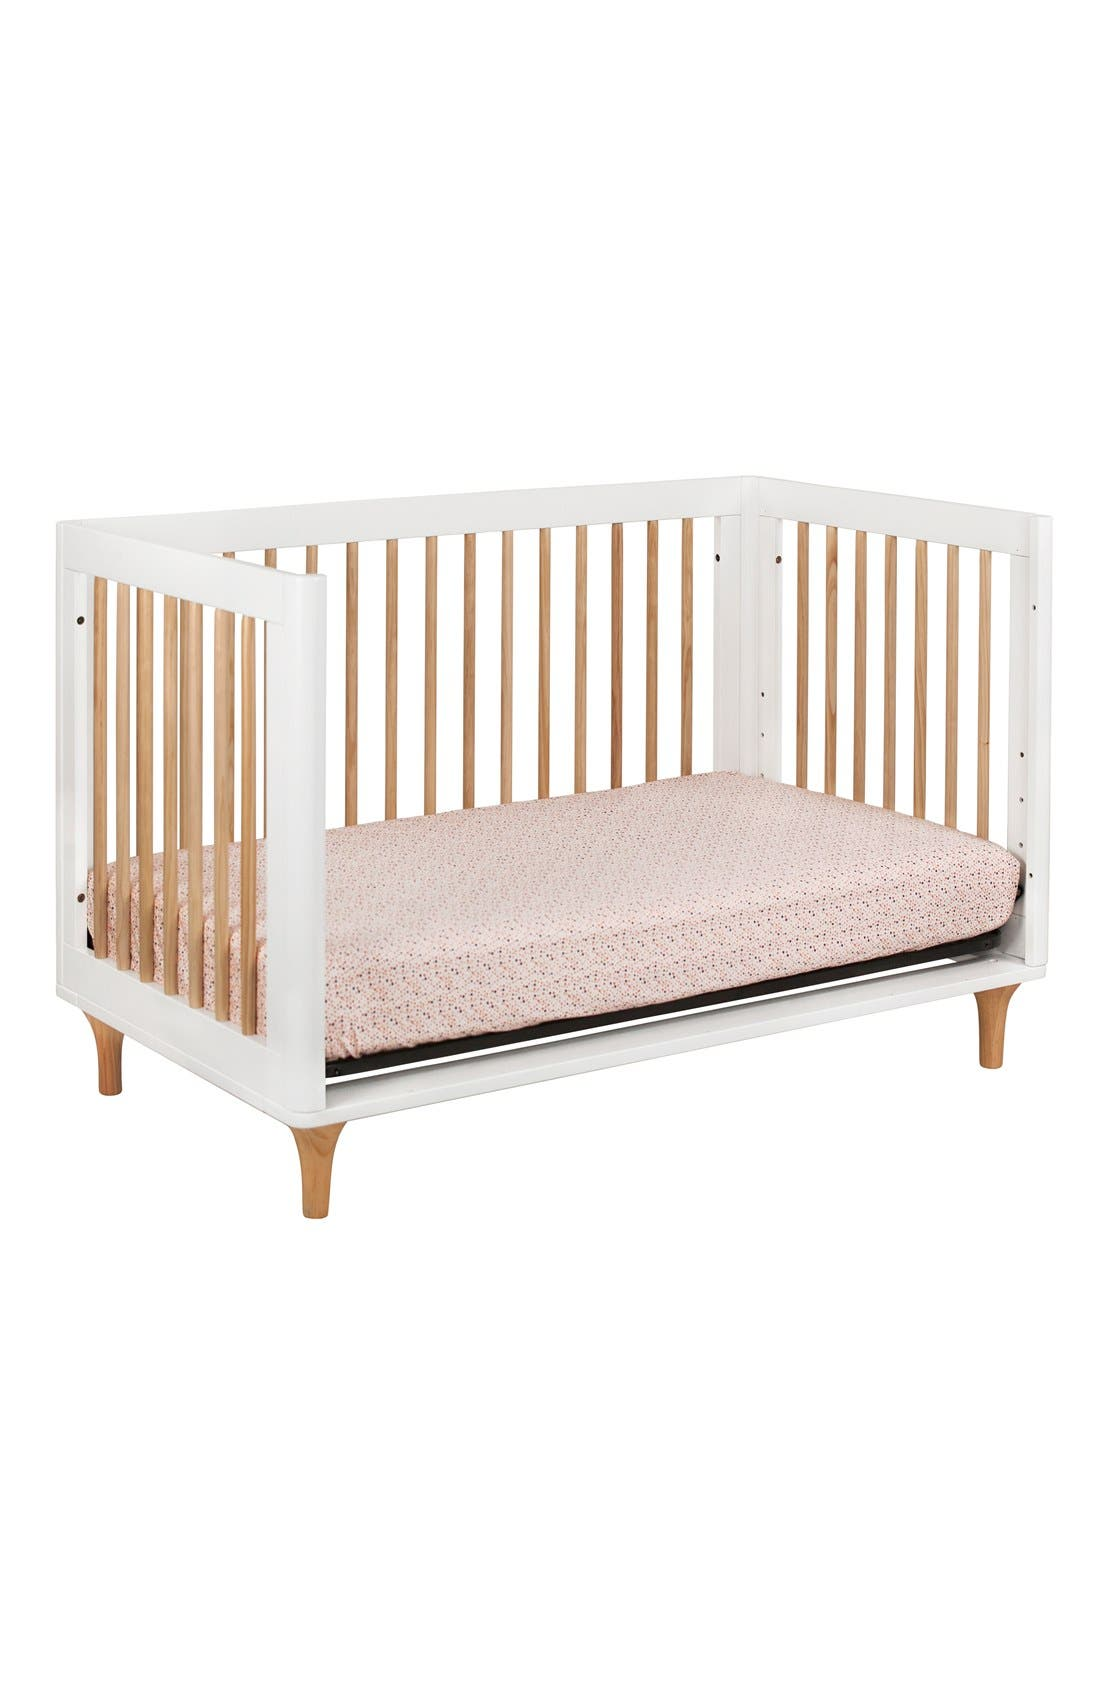 'Lolly' 3-in-1 Convertible Crib,                             Alternate thumbnail 6, color,                             250